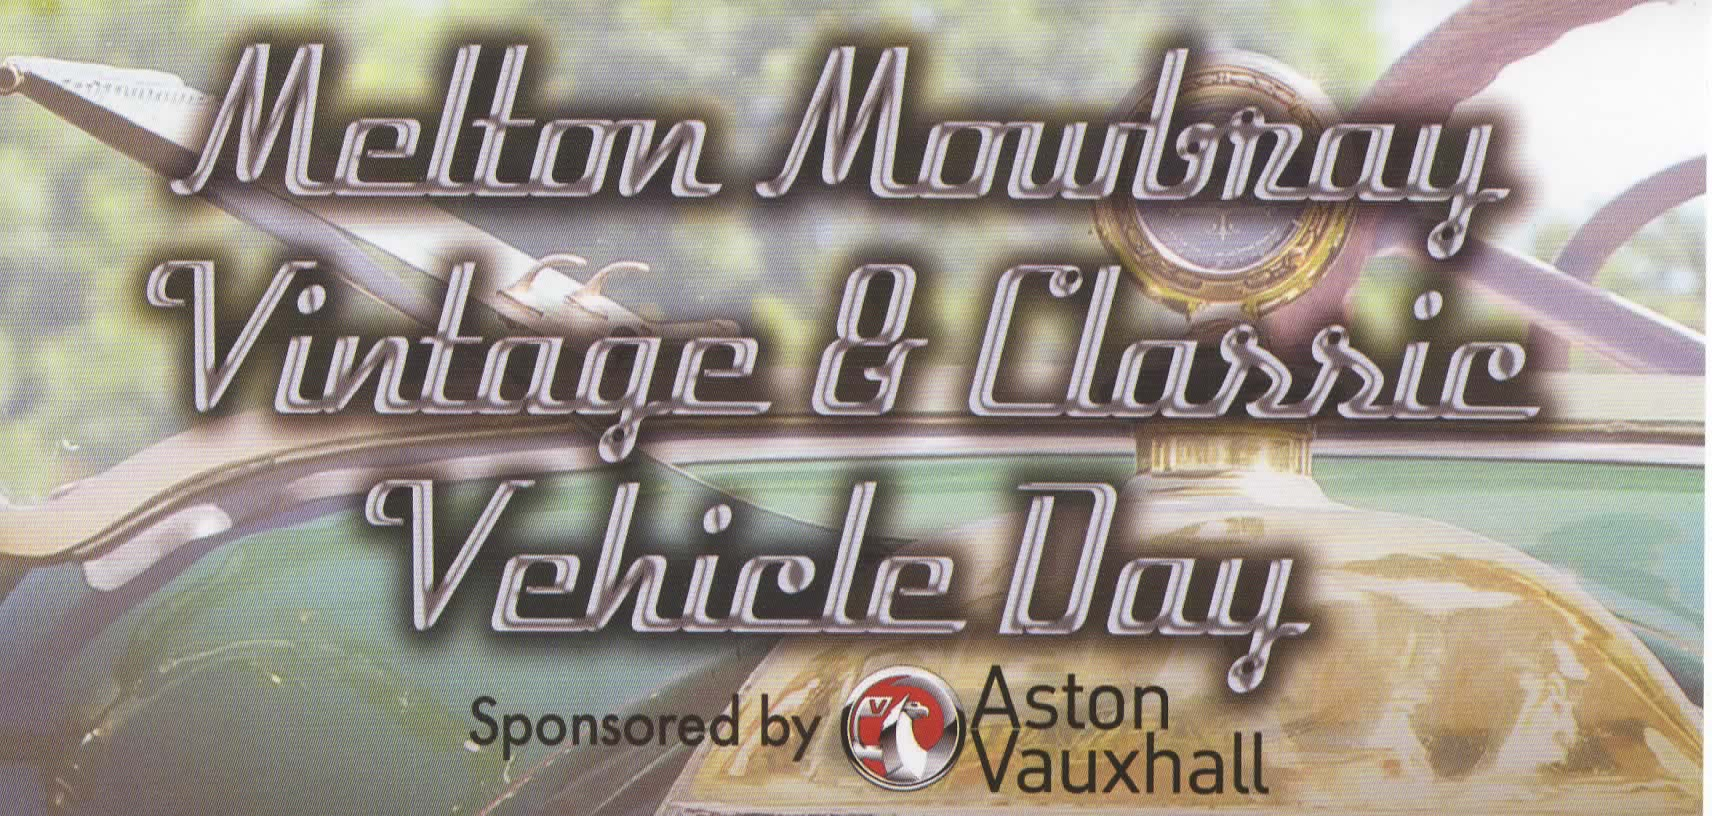 Vehicle Show banner